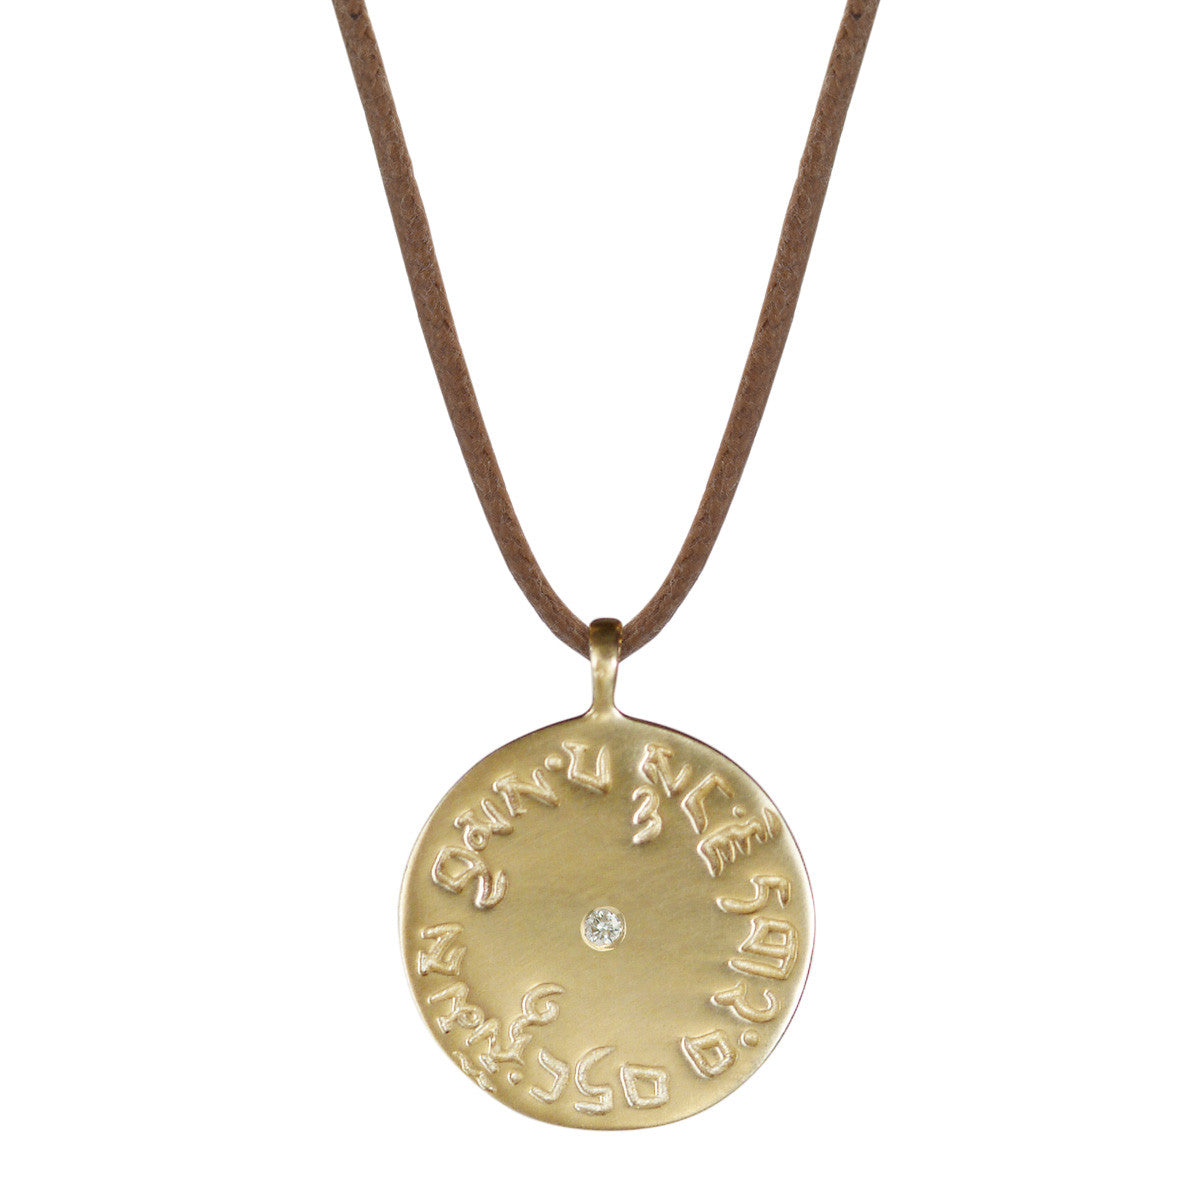 10K Gold Four Immeasurables Medallion Pendant with Diamond on Cord